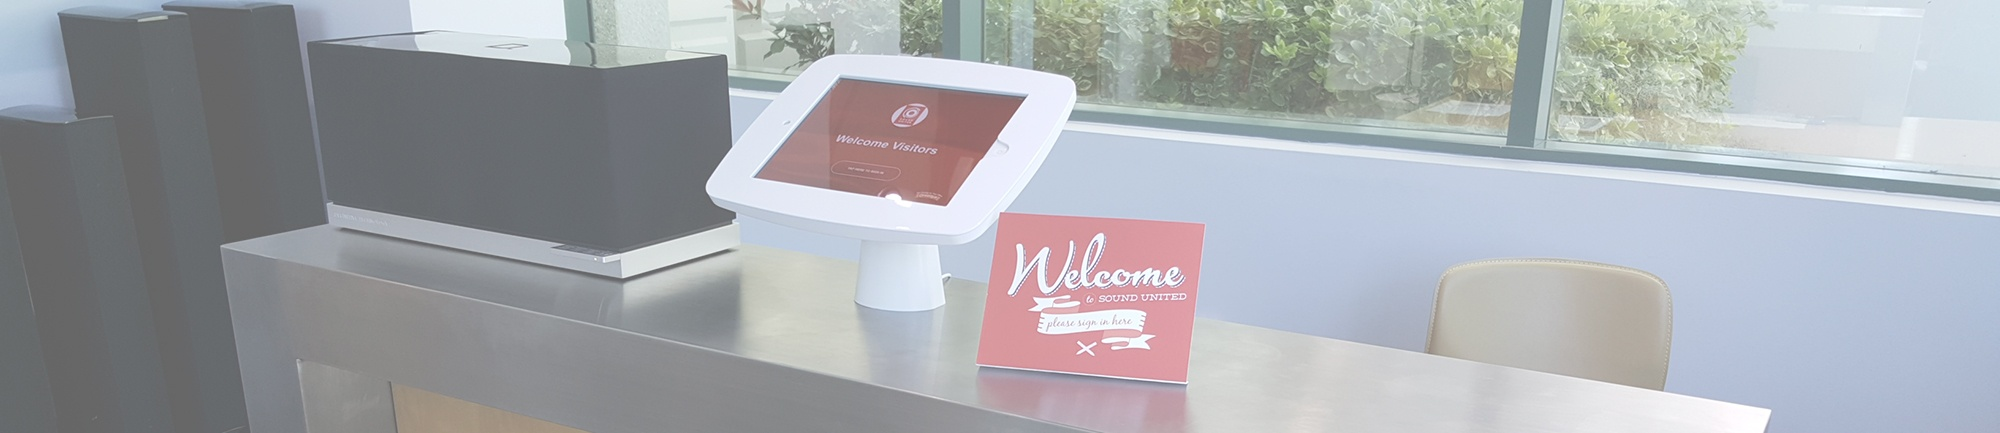 Beautiful reception area features a visitor sign-in app